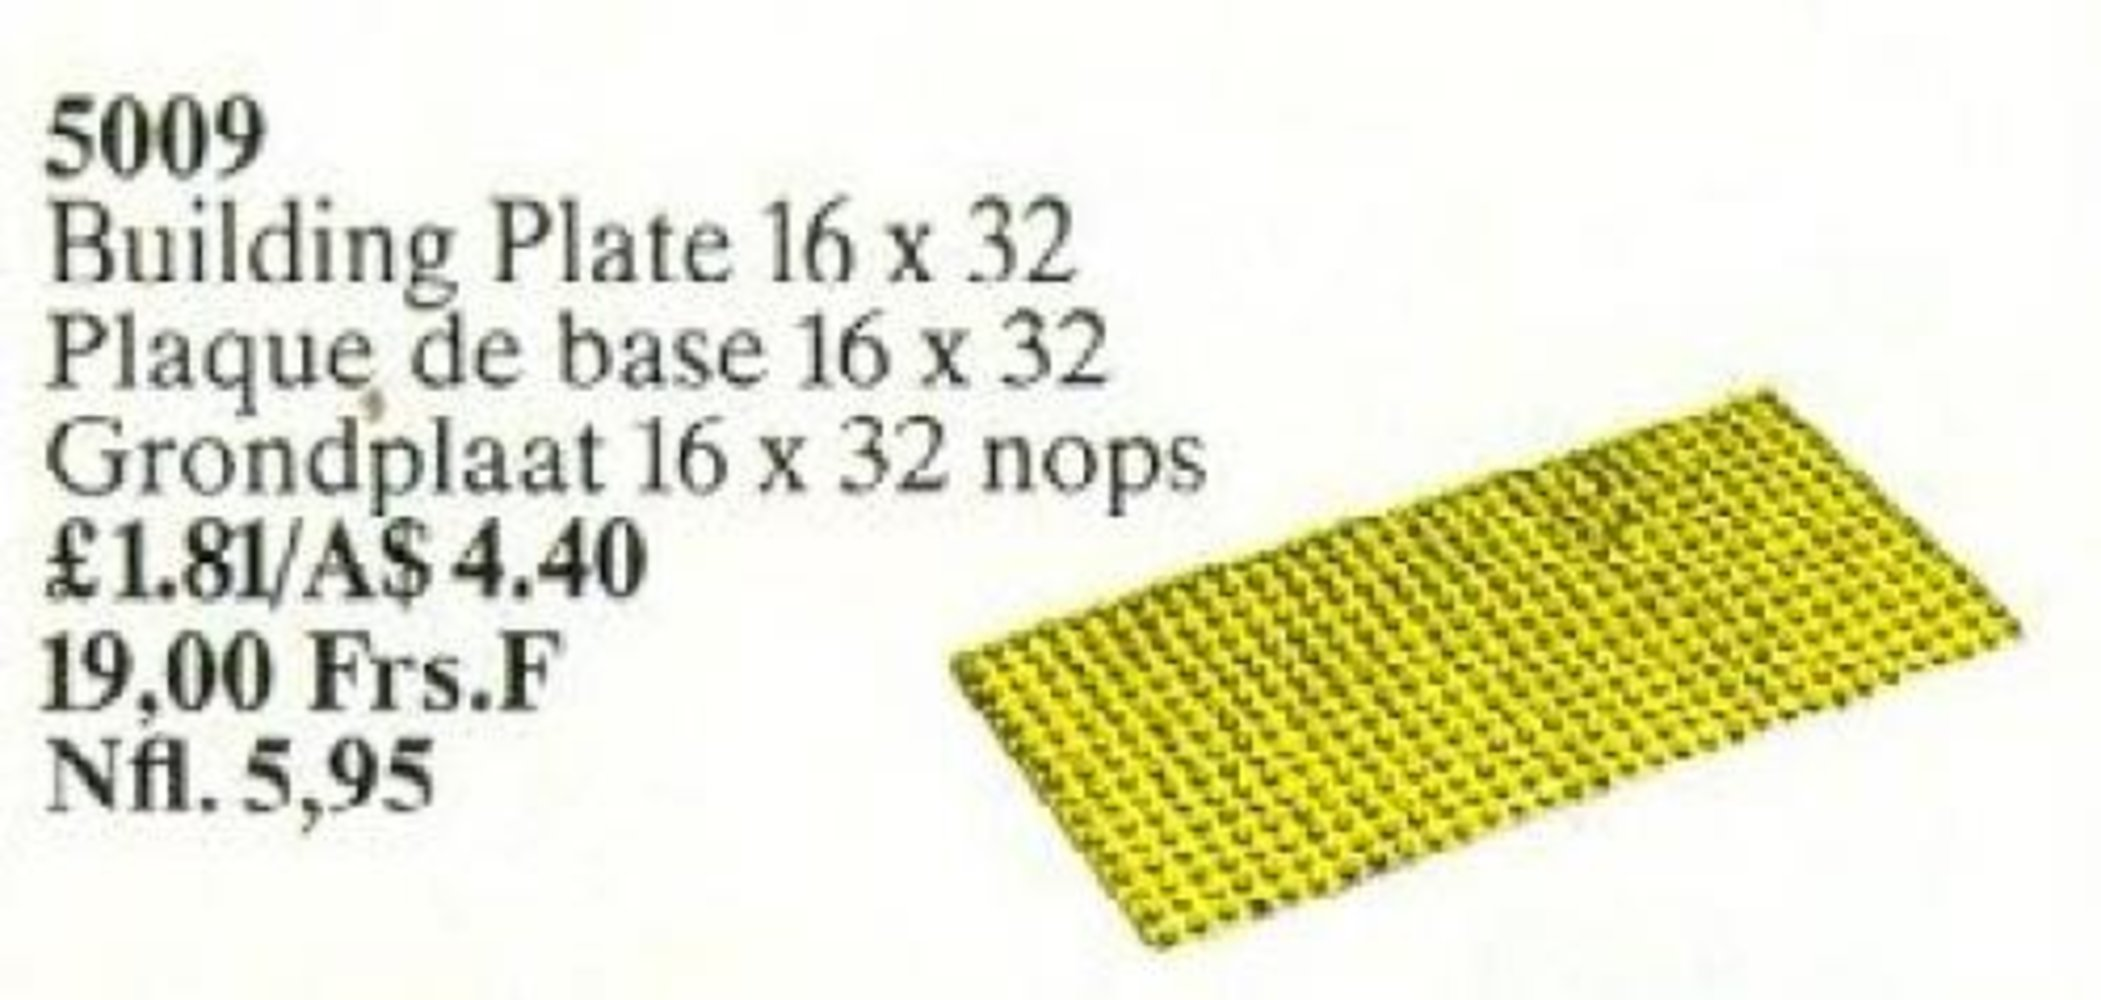 Building Plate 16 x 32, Yellow